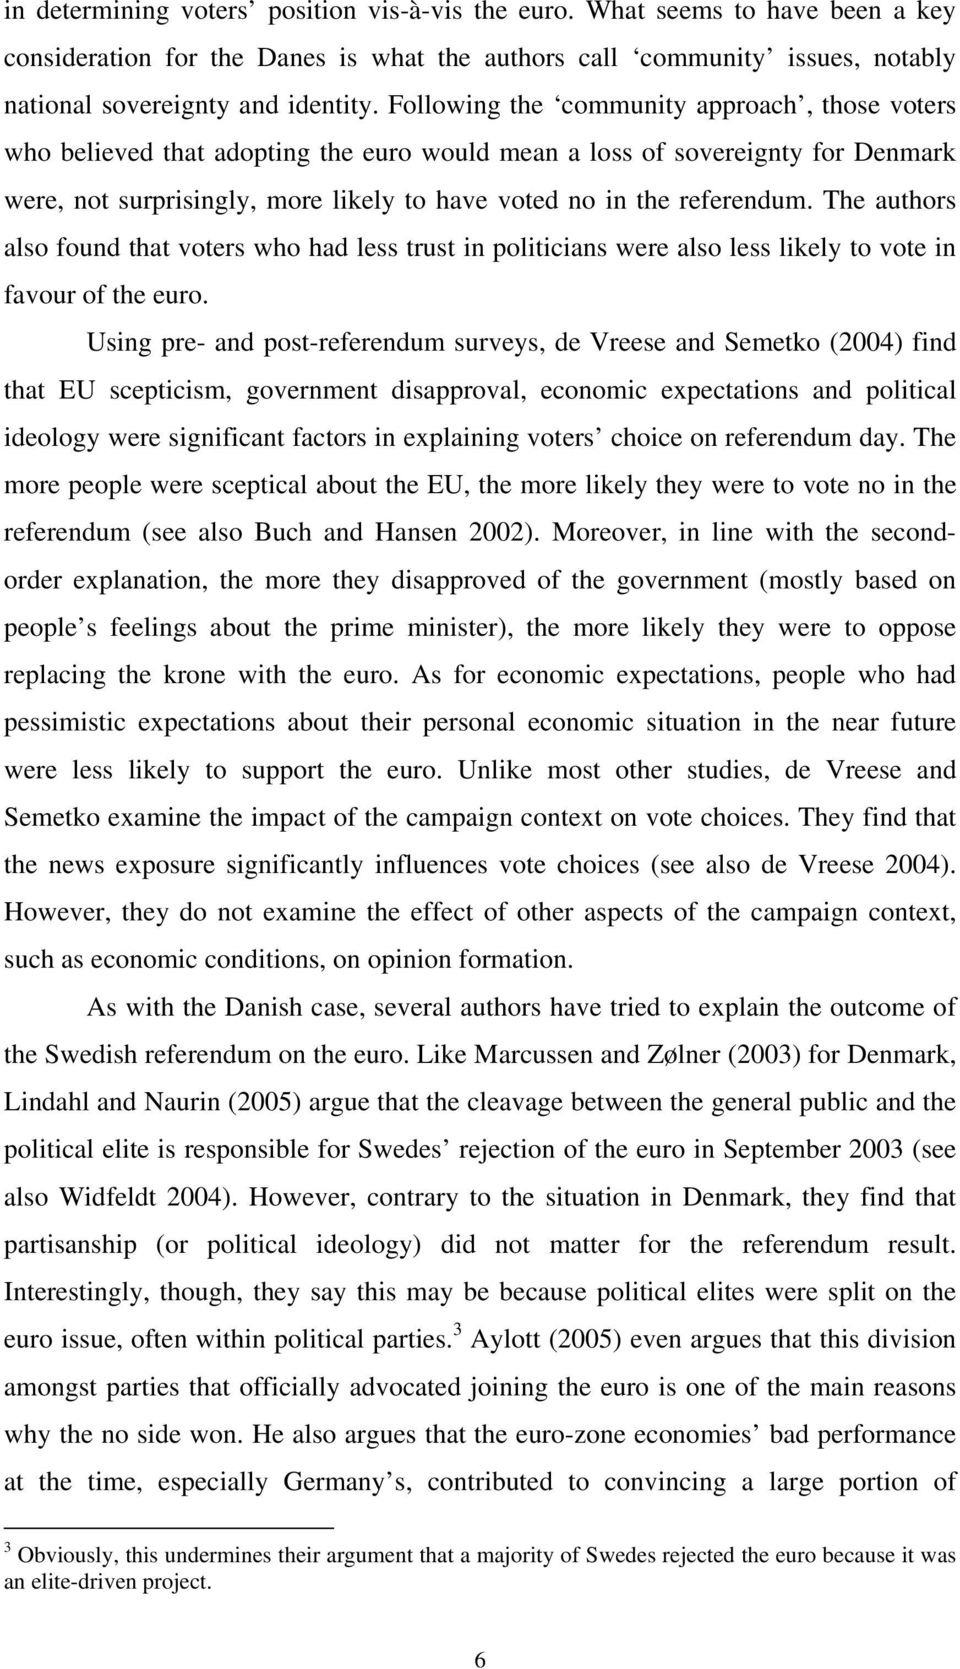 The authors also found that voters who had less trust in politicians were also less likely to vote in favour of the euro.